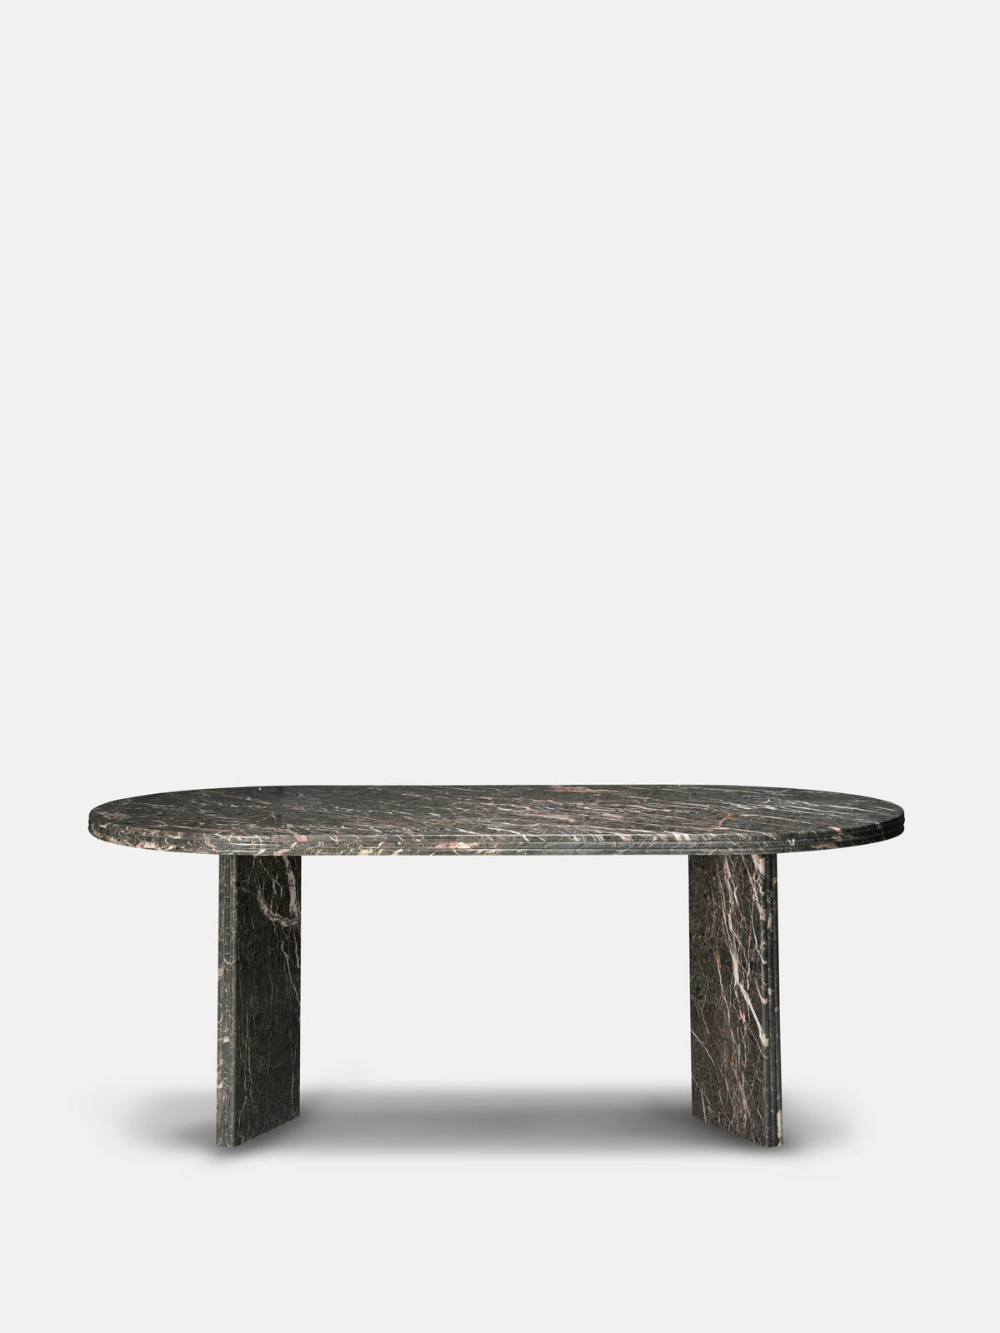 Rosaline Dining Table Soho Home Dining Table Marble Modern Dining Furniture Dining Table [ 1333 x 1000 Pixel ]